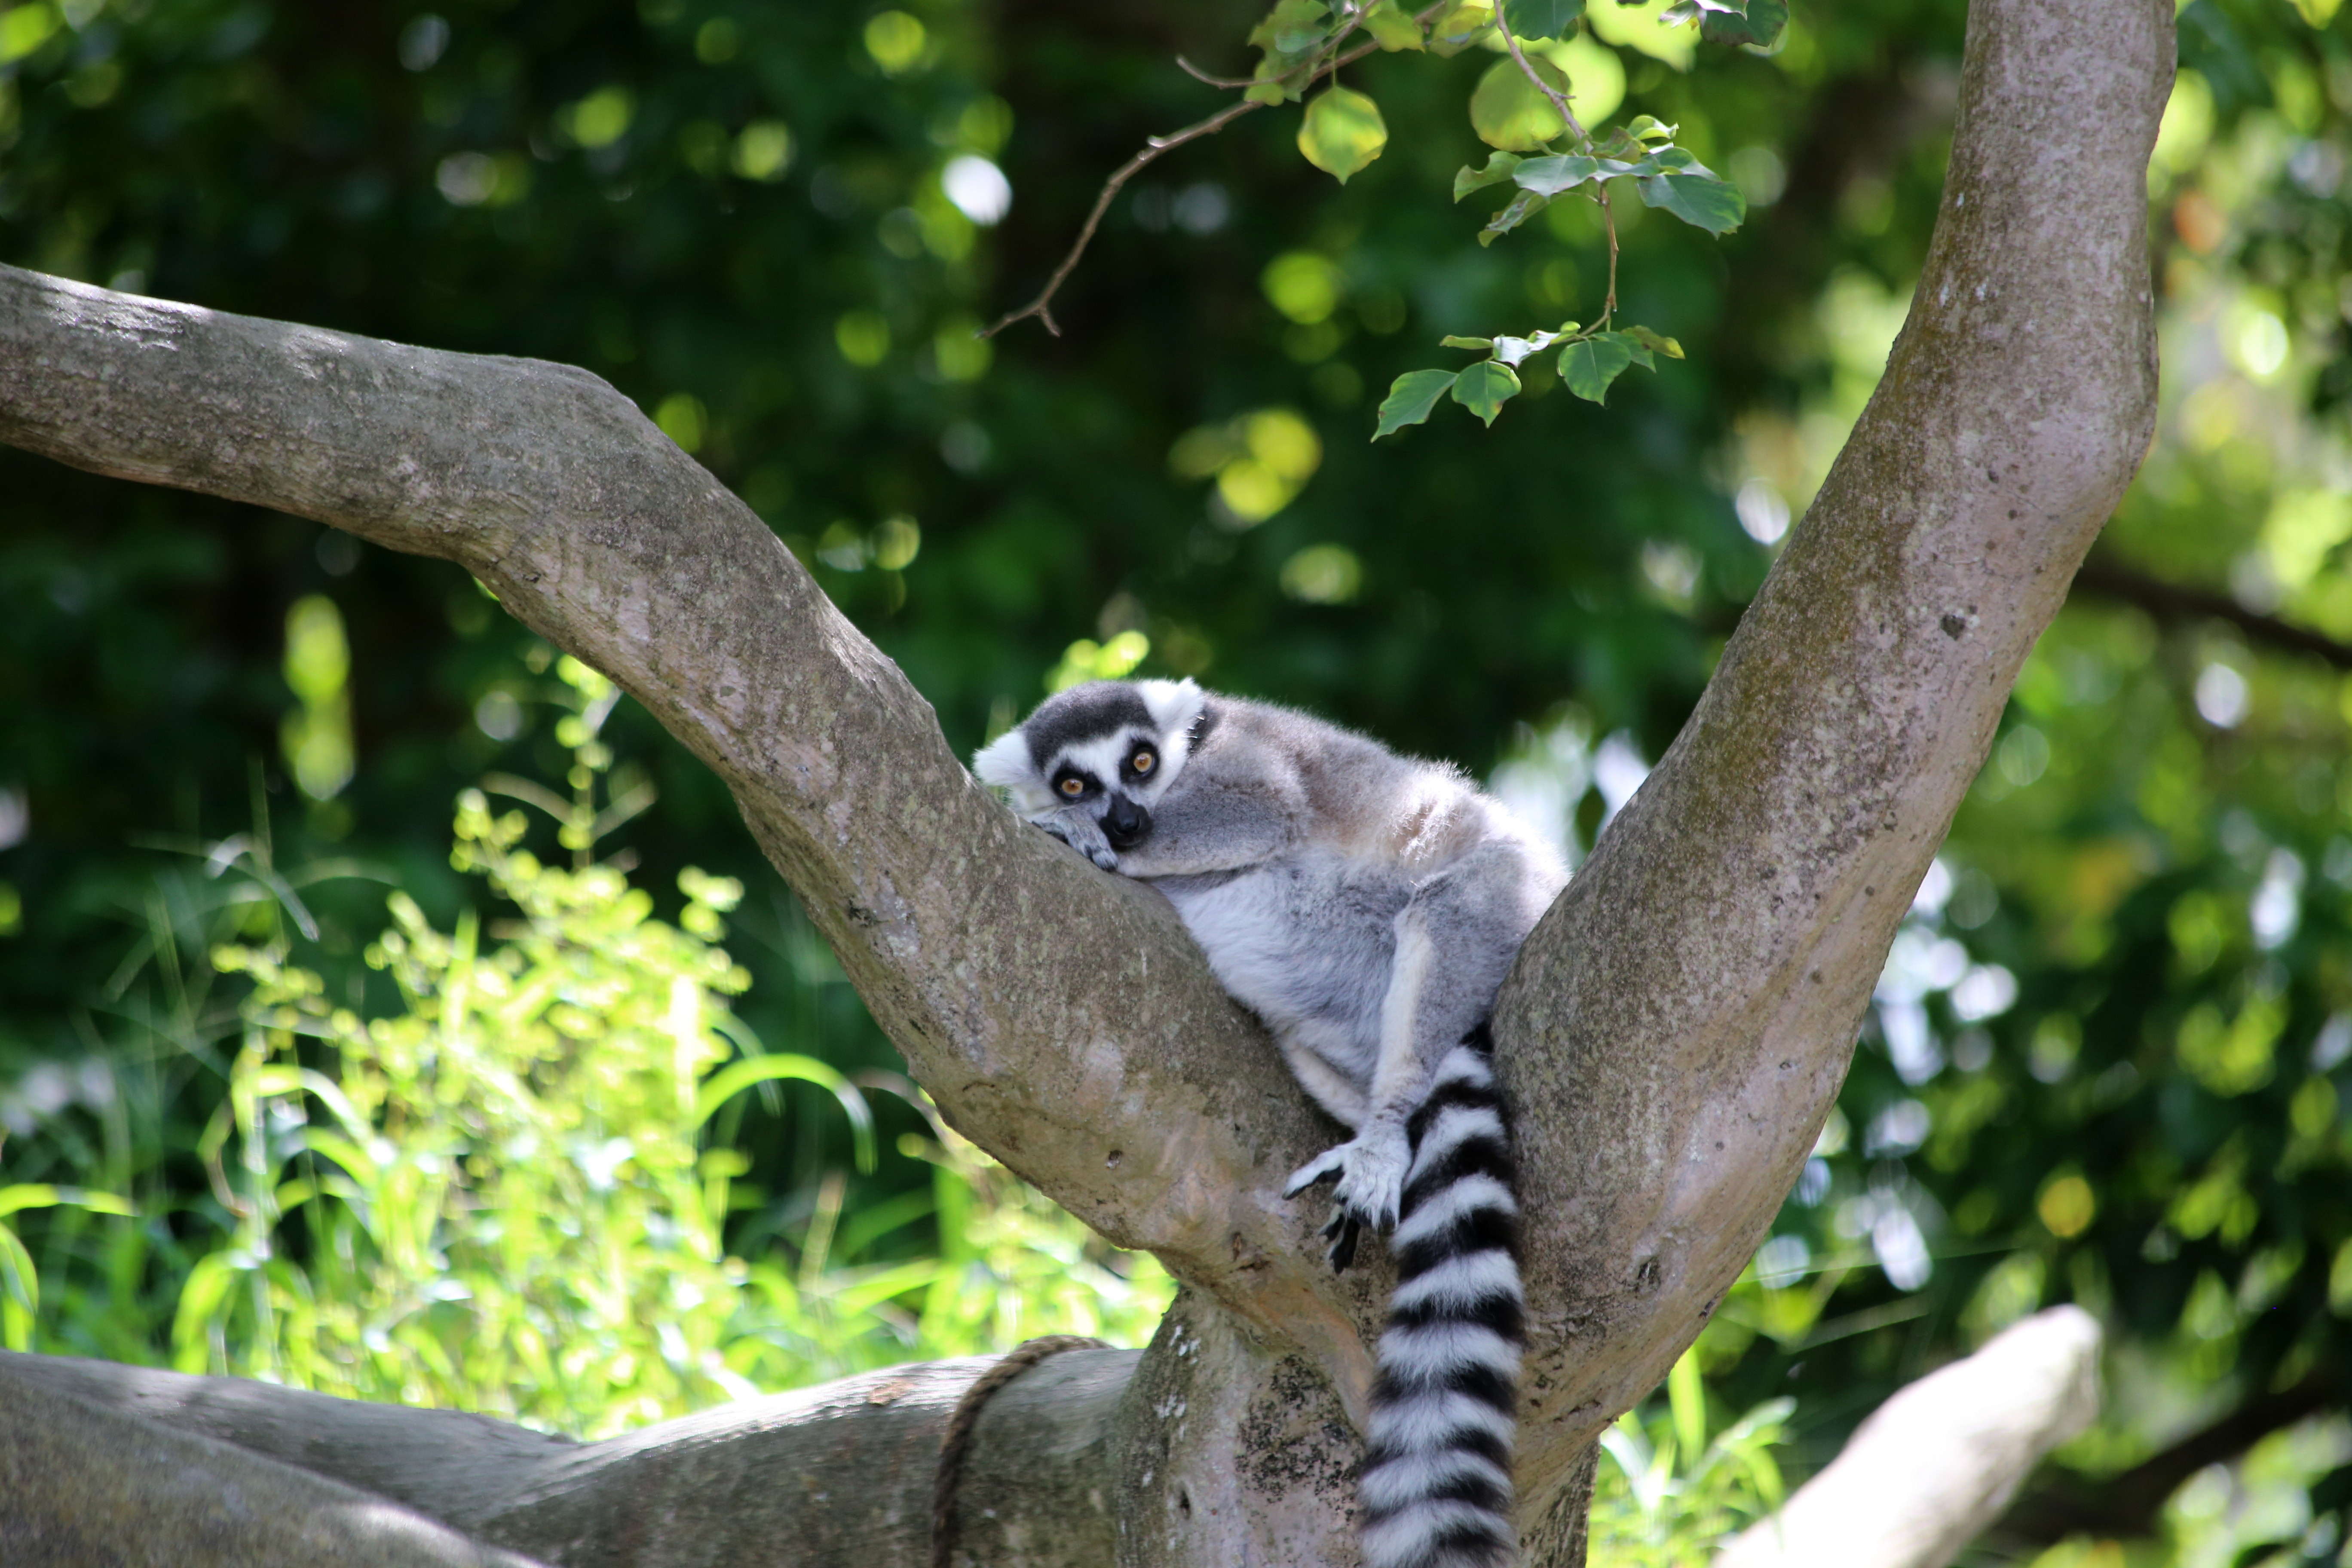 115615 download wallpaper Animals, Lemur, Nice, Sweetheart, Animal, Wood, Tree screensavers and pictures for free